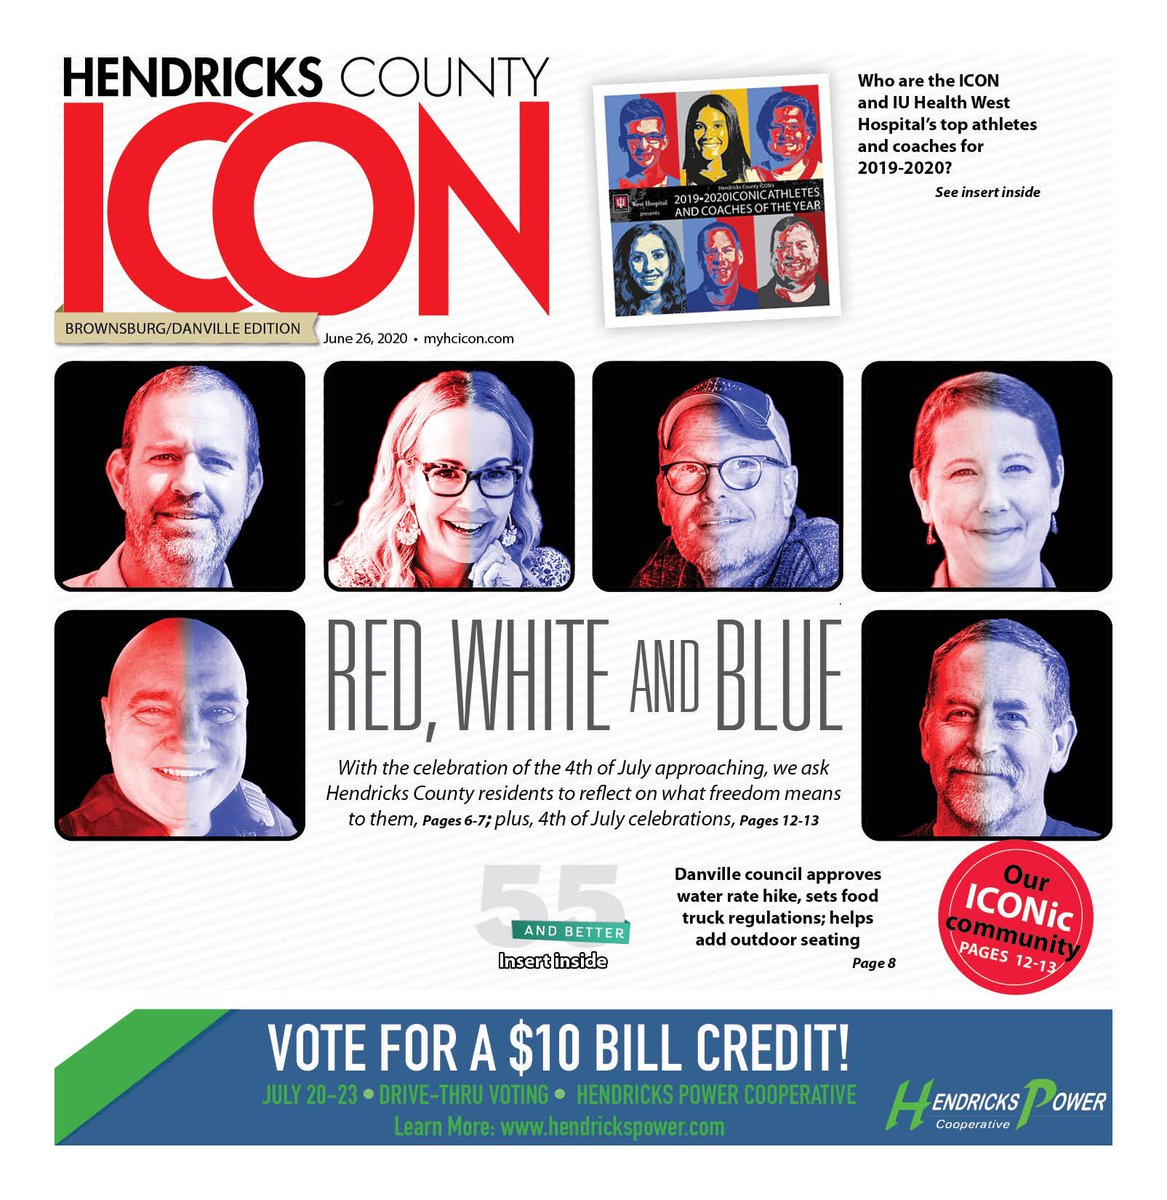 Red, White and Blue: Six Hendricks County residents reflect on freedom.   Story link: https://t.co/2tBSzkoydk  #IndependenceDay #Freedom #Community #ALLinHendricksCounty #inHendricks https://t.co/1gAkGaHDyF